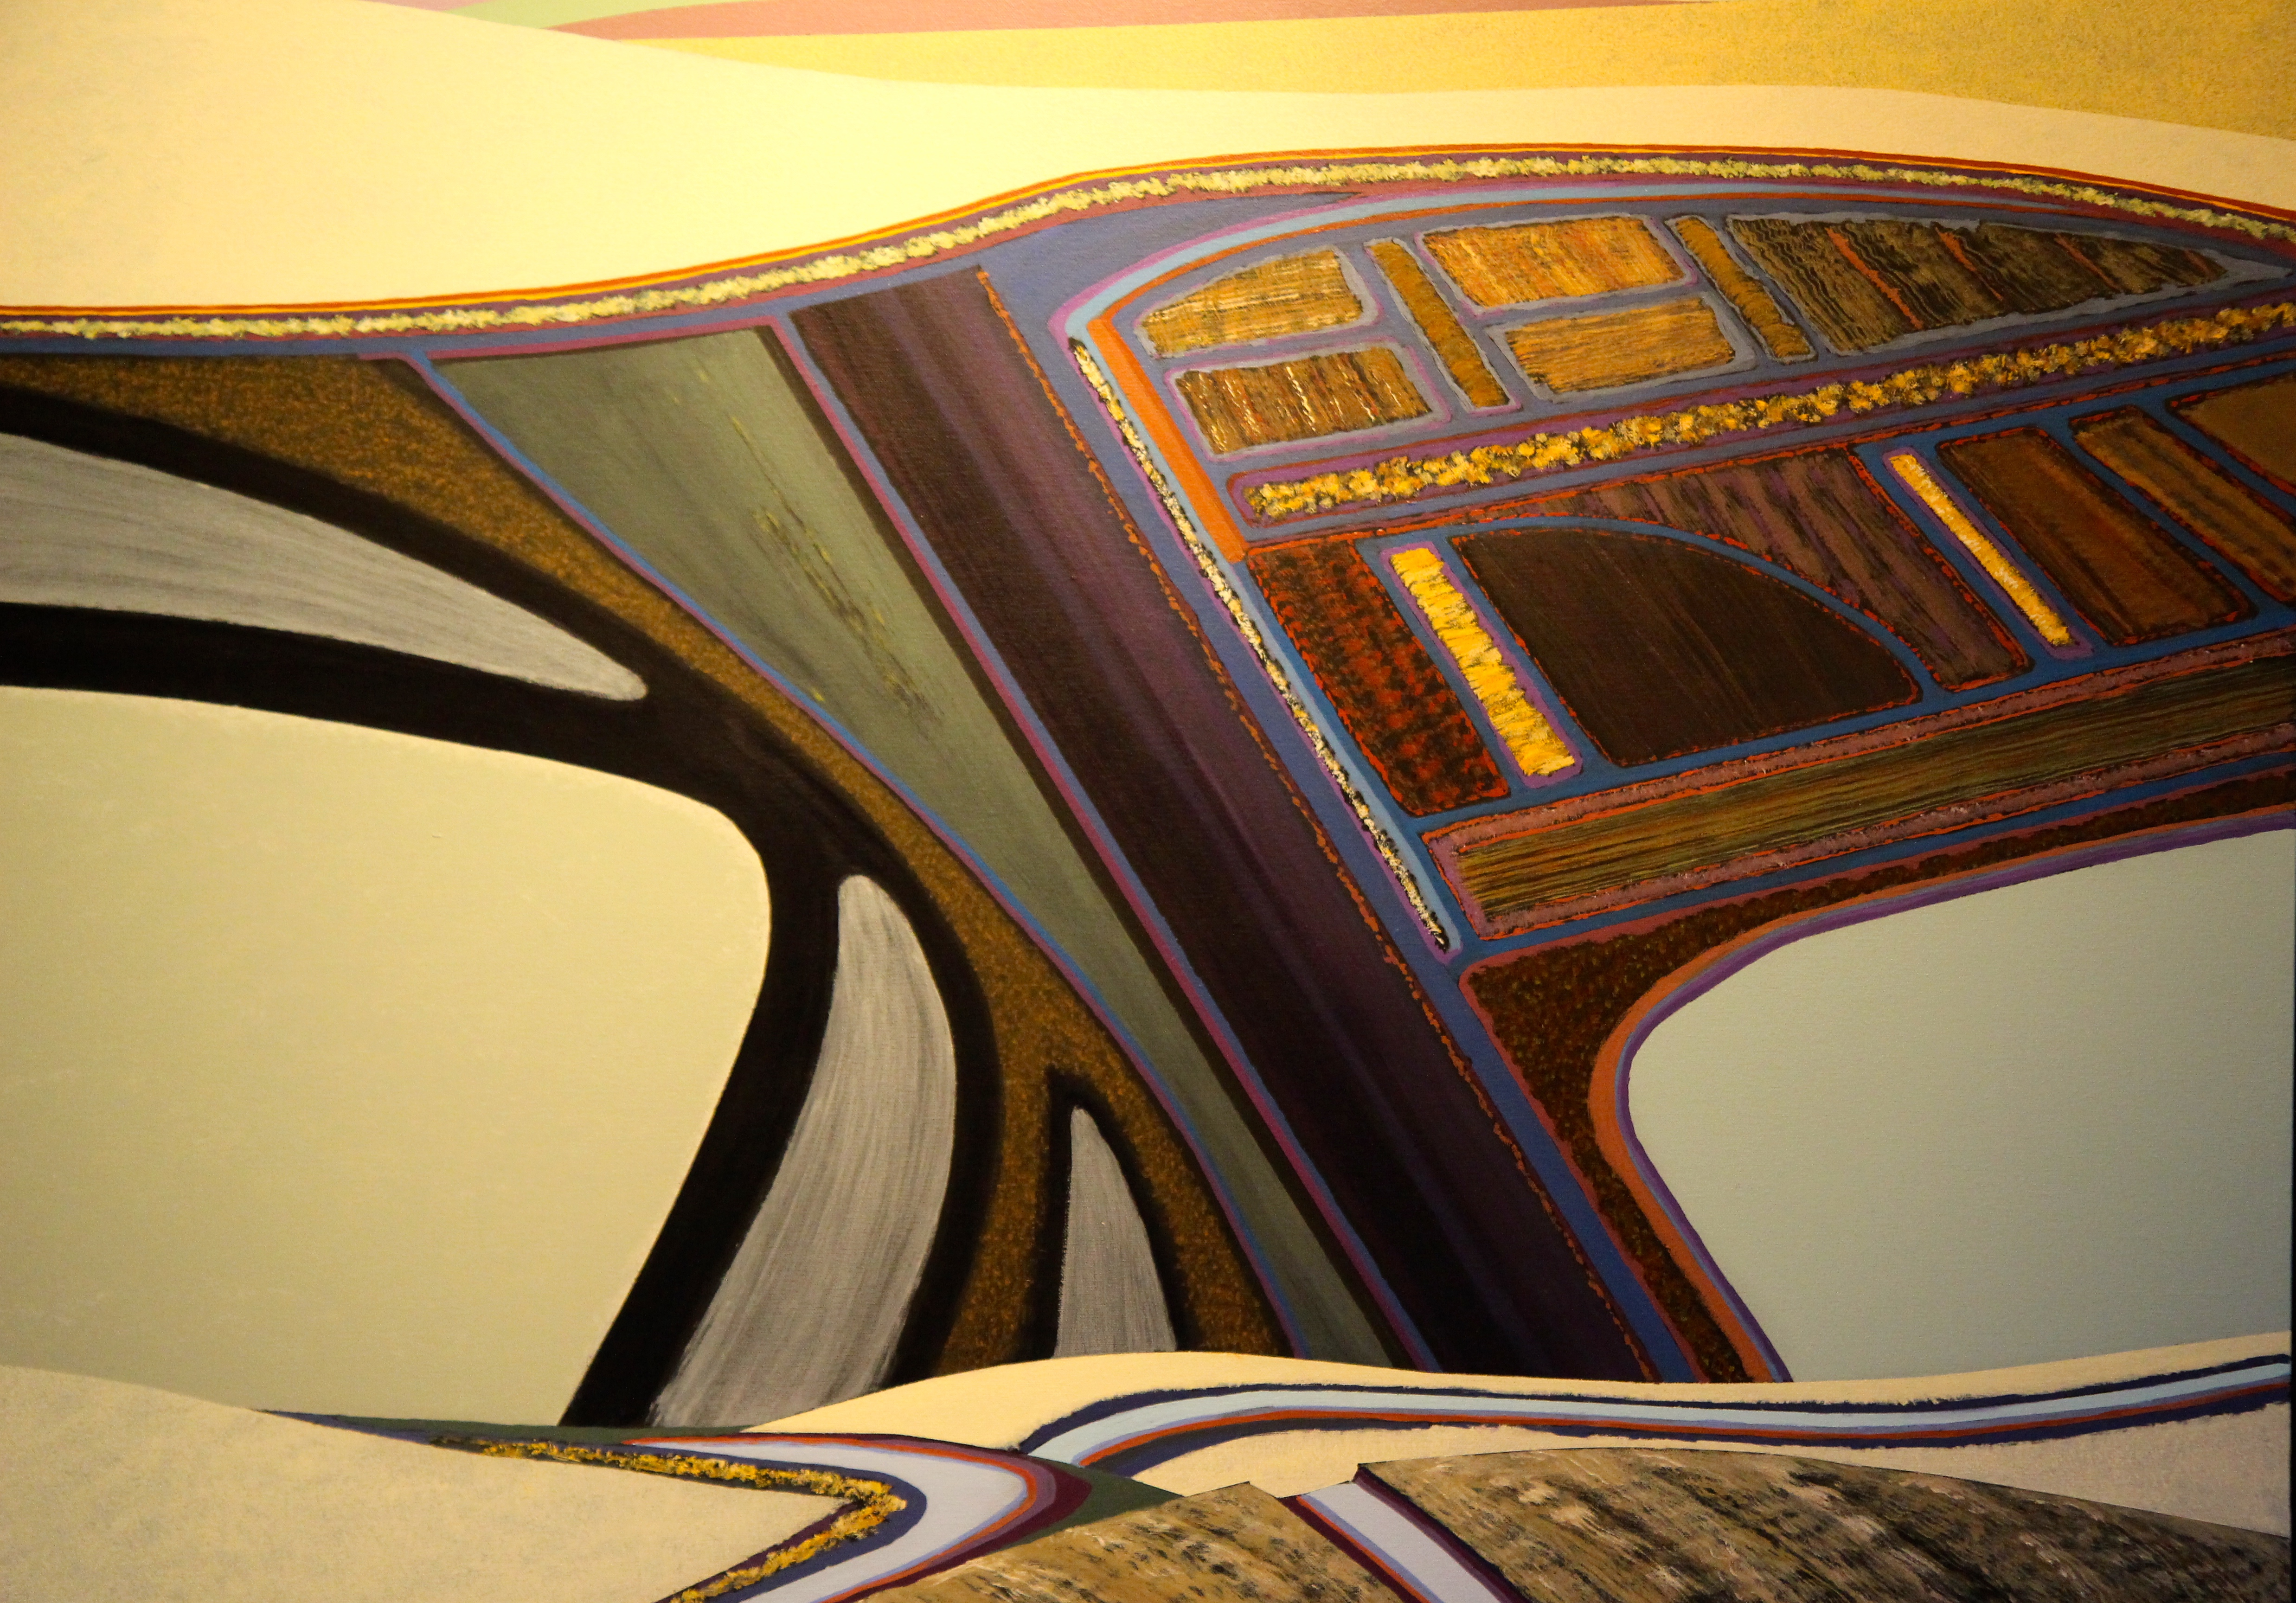 Fantastic, geometric landscapes make up a Jon Jay Cruson exhibit now showing at the White Lotus Gallery